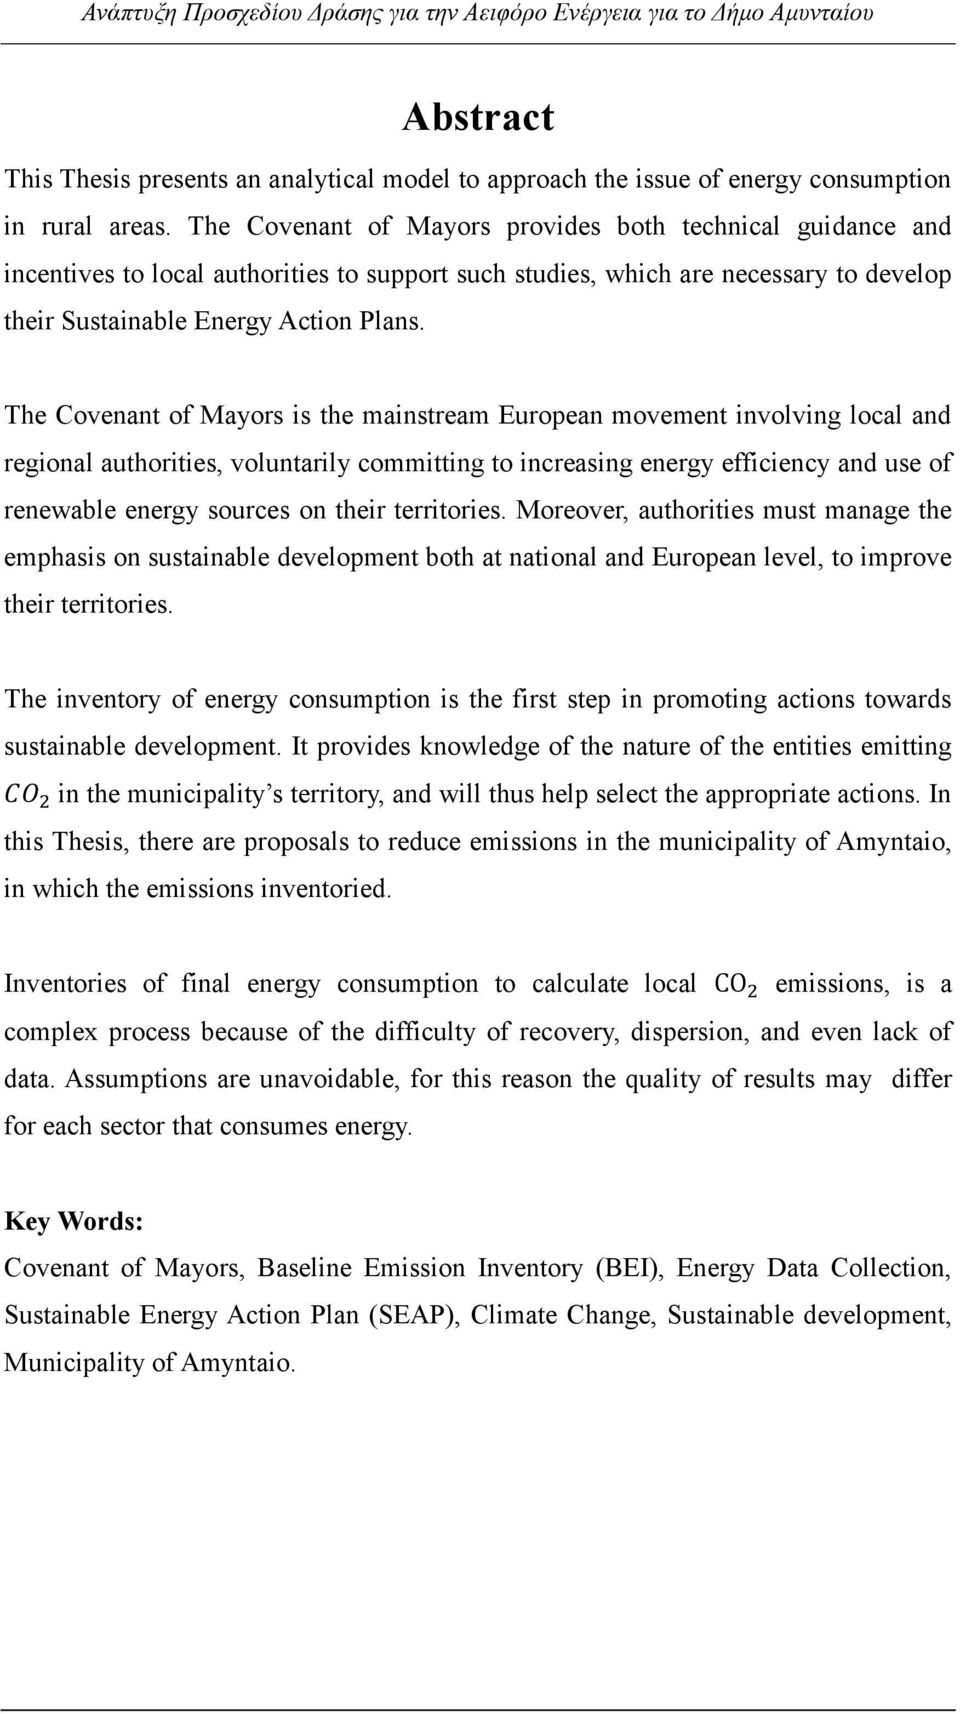 The Covenant of Mayors is the mainstream European movement involving local and regional authorities, voluntarily committing to increasing energy efficiency and use of renewable energy sources on